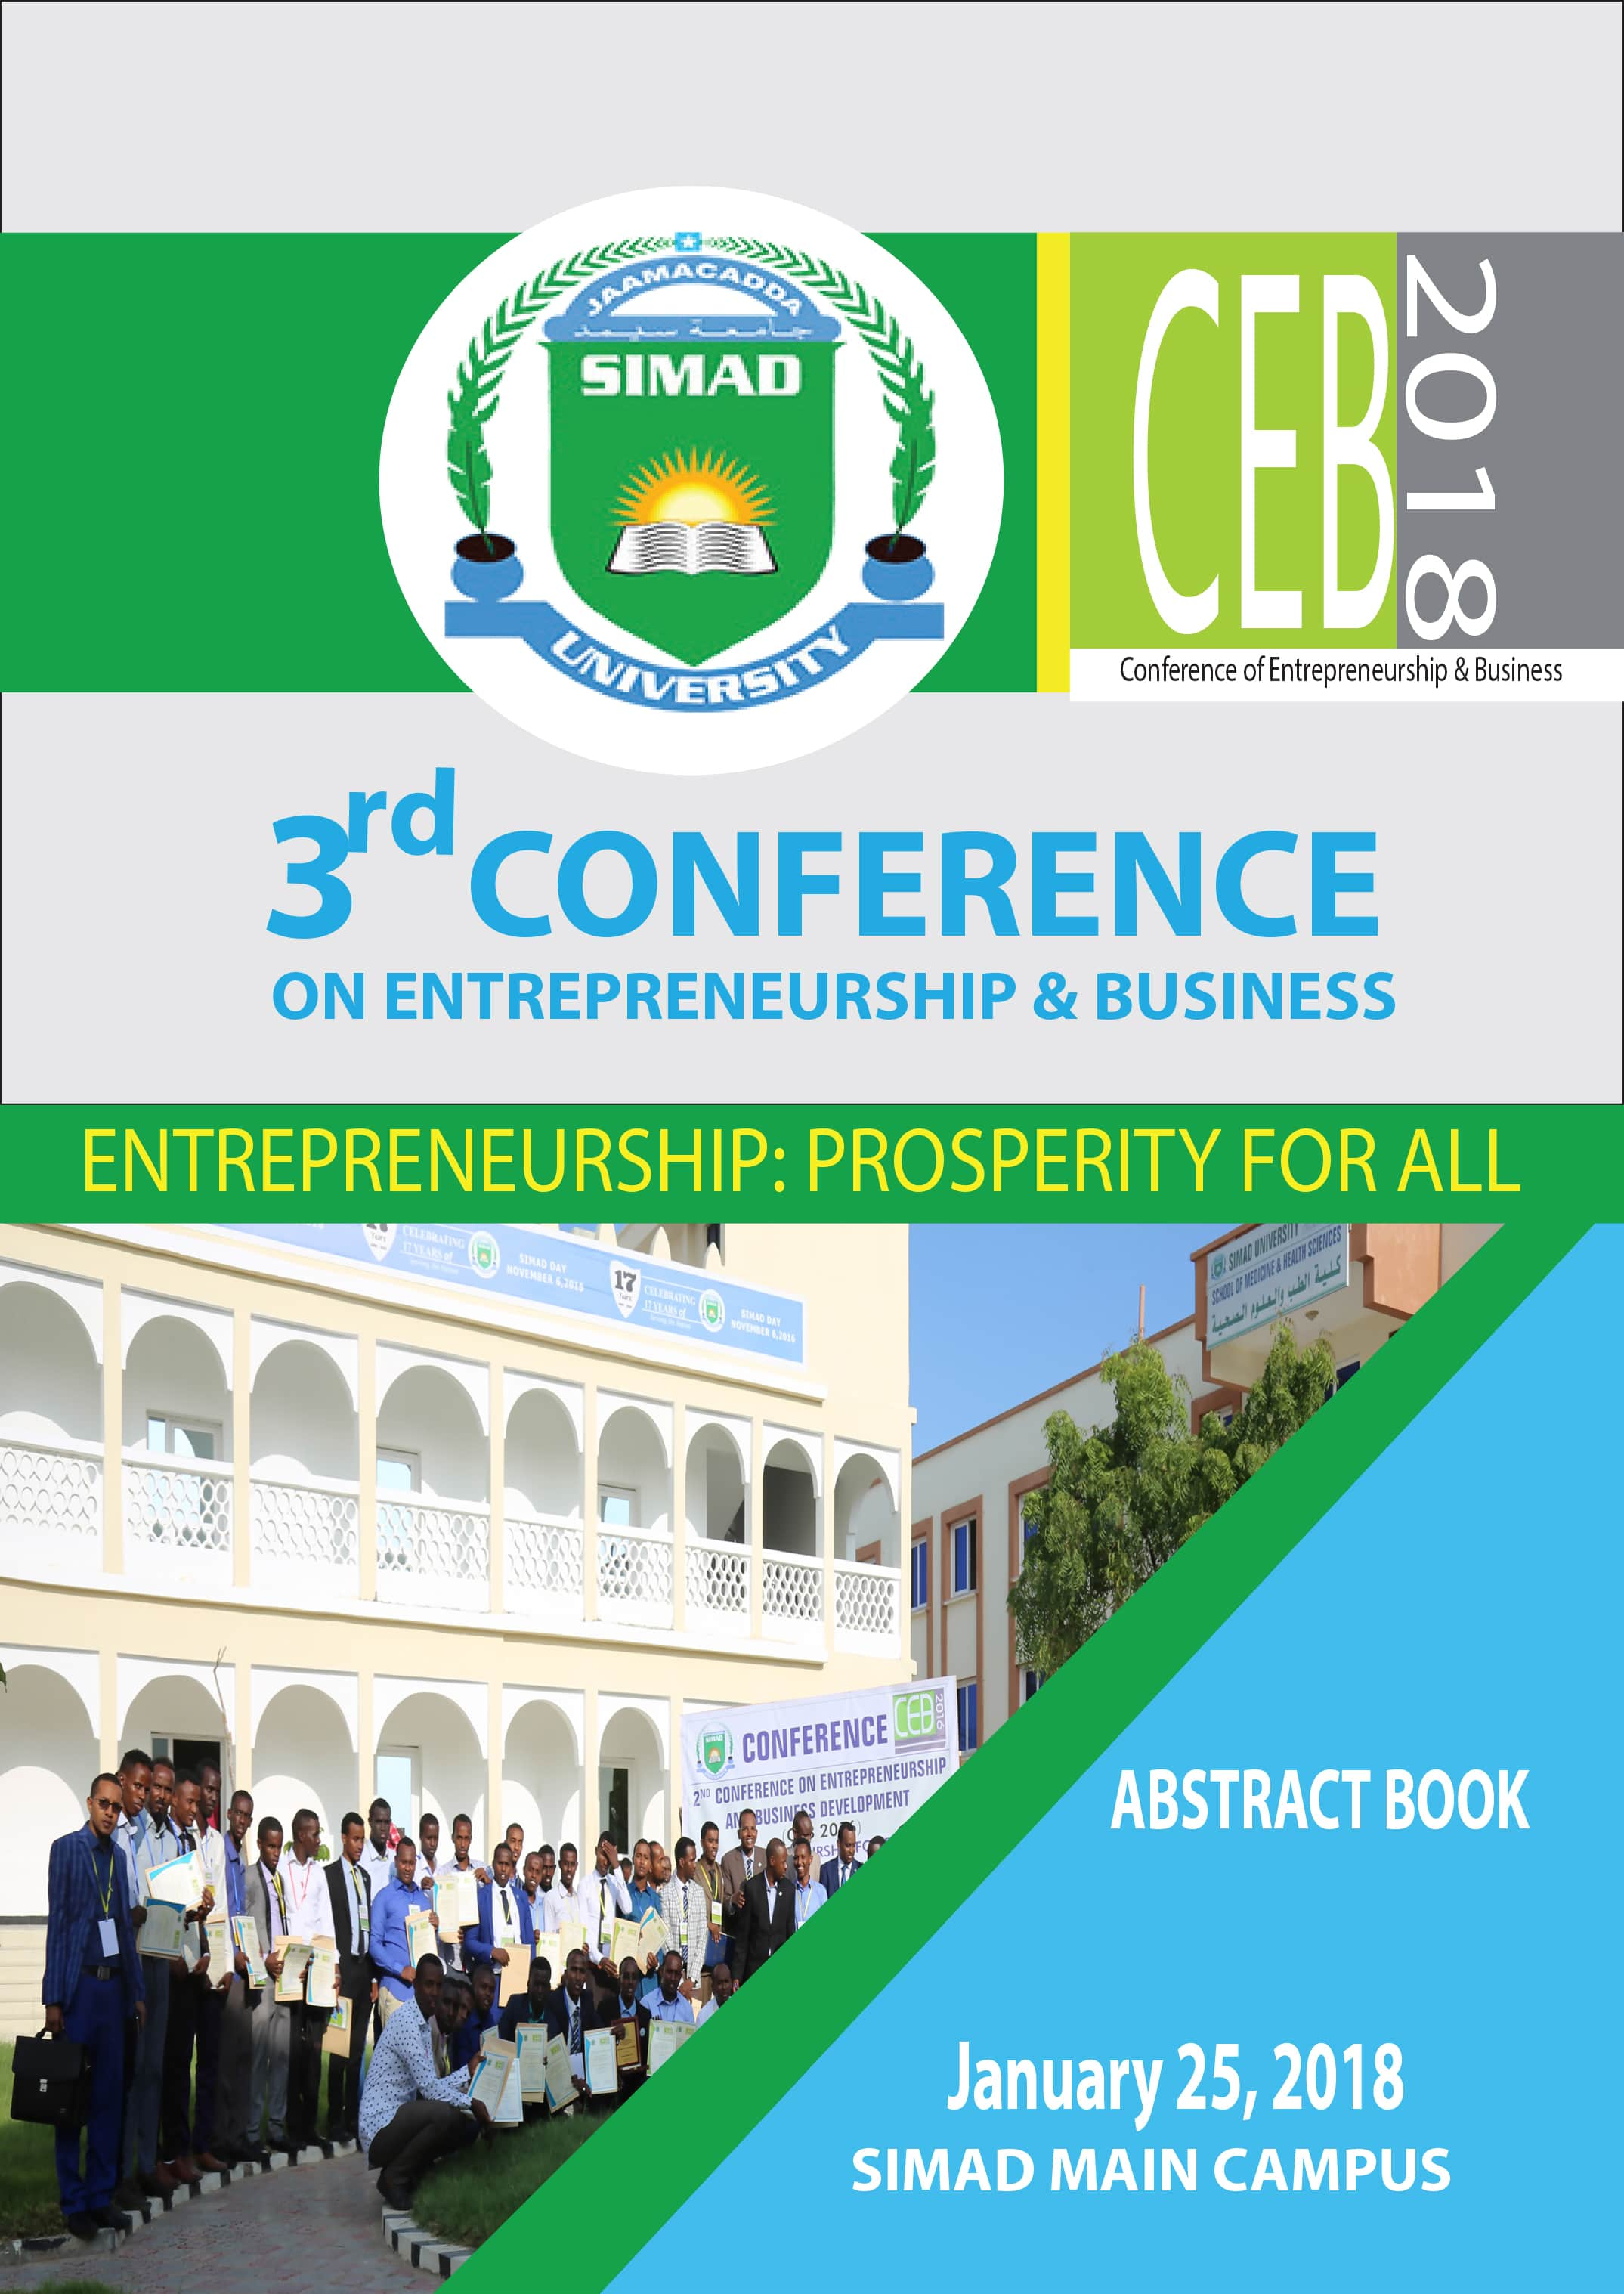 Download the Abstract Book for the CEB Conference 2018